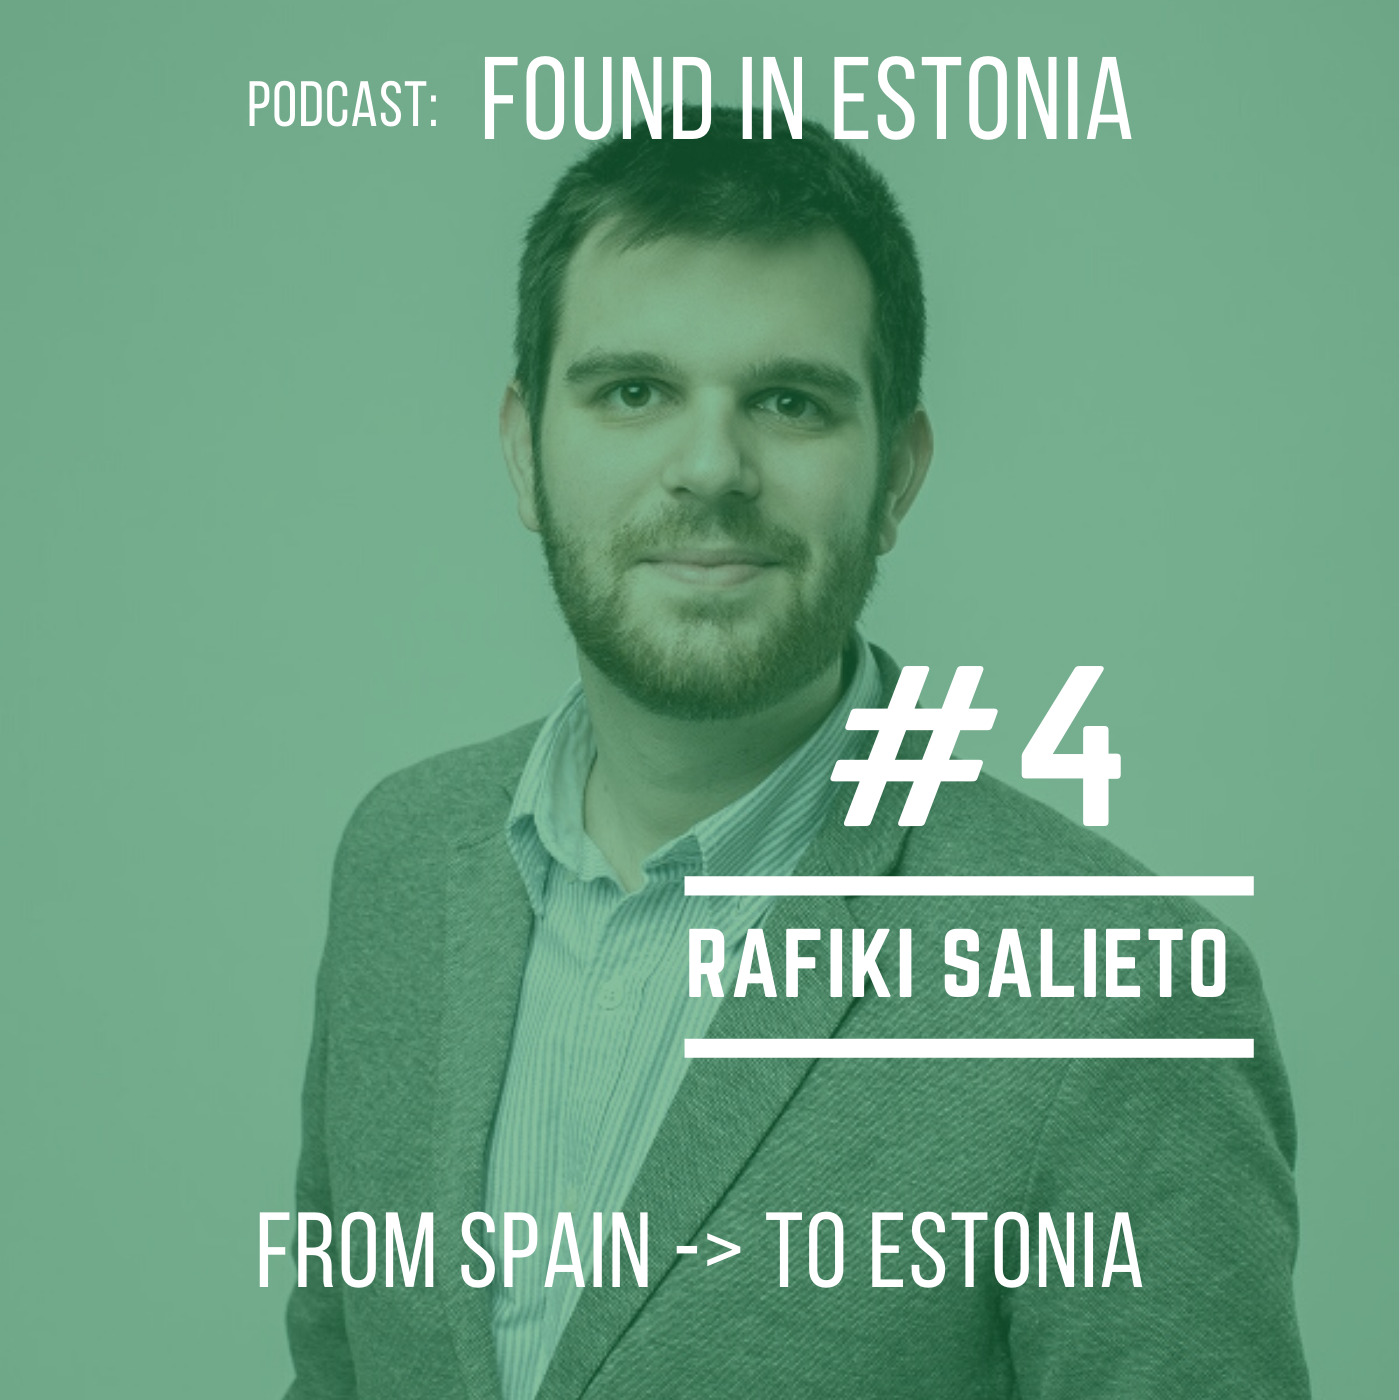 #4 from Spain to Estonia - Rafiki Salieto